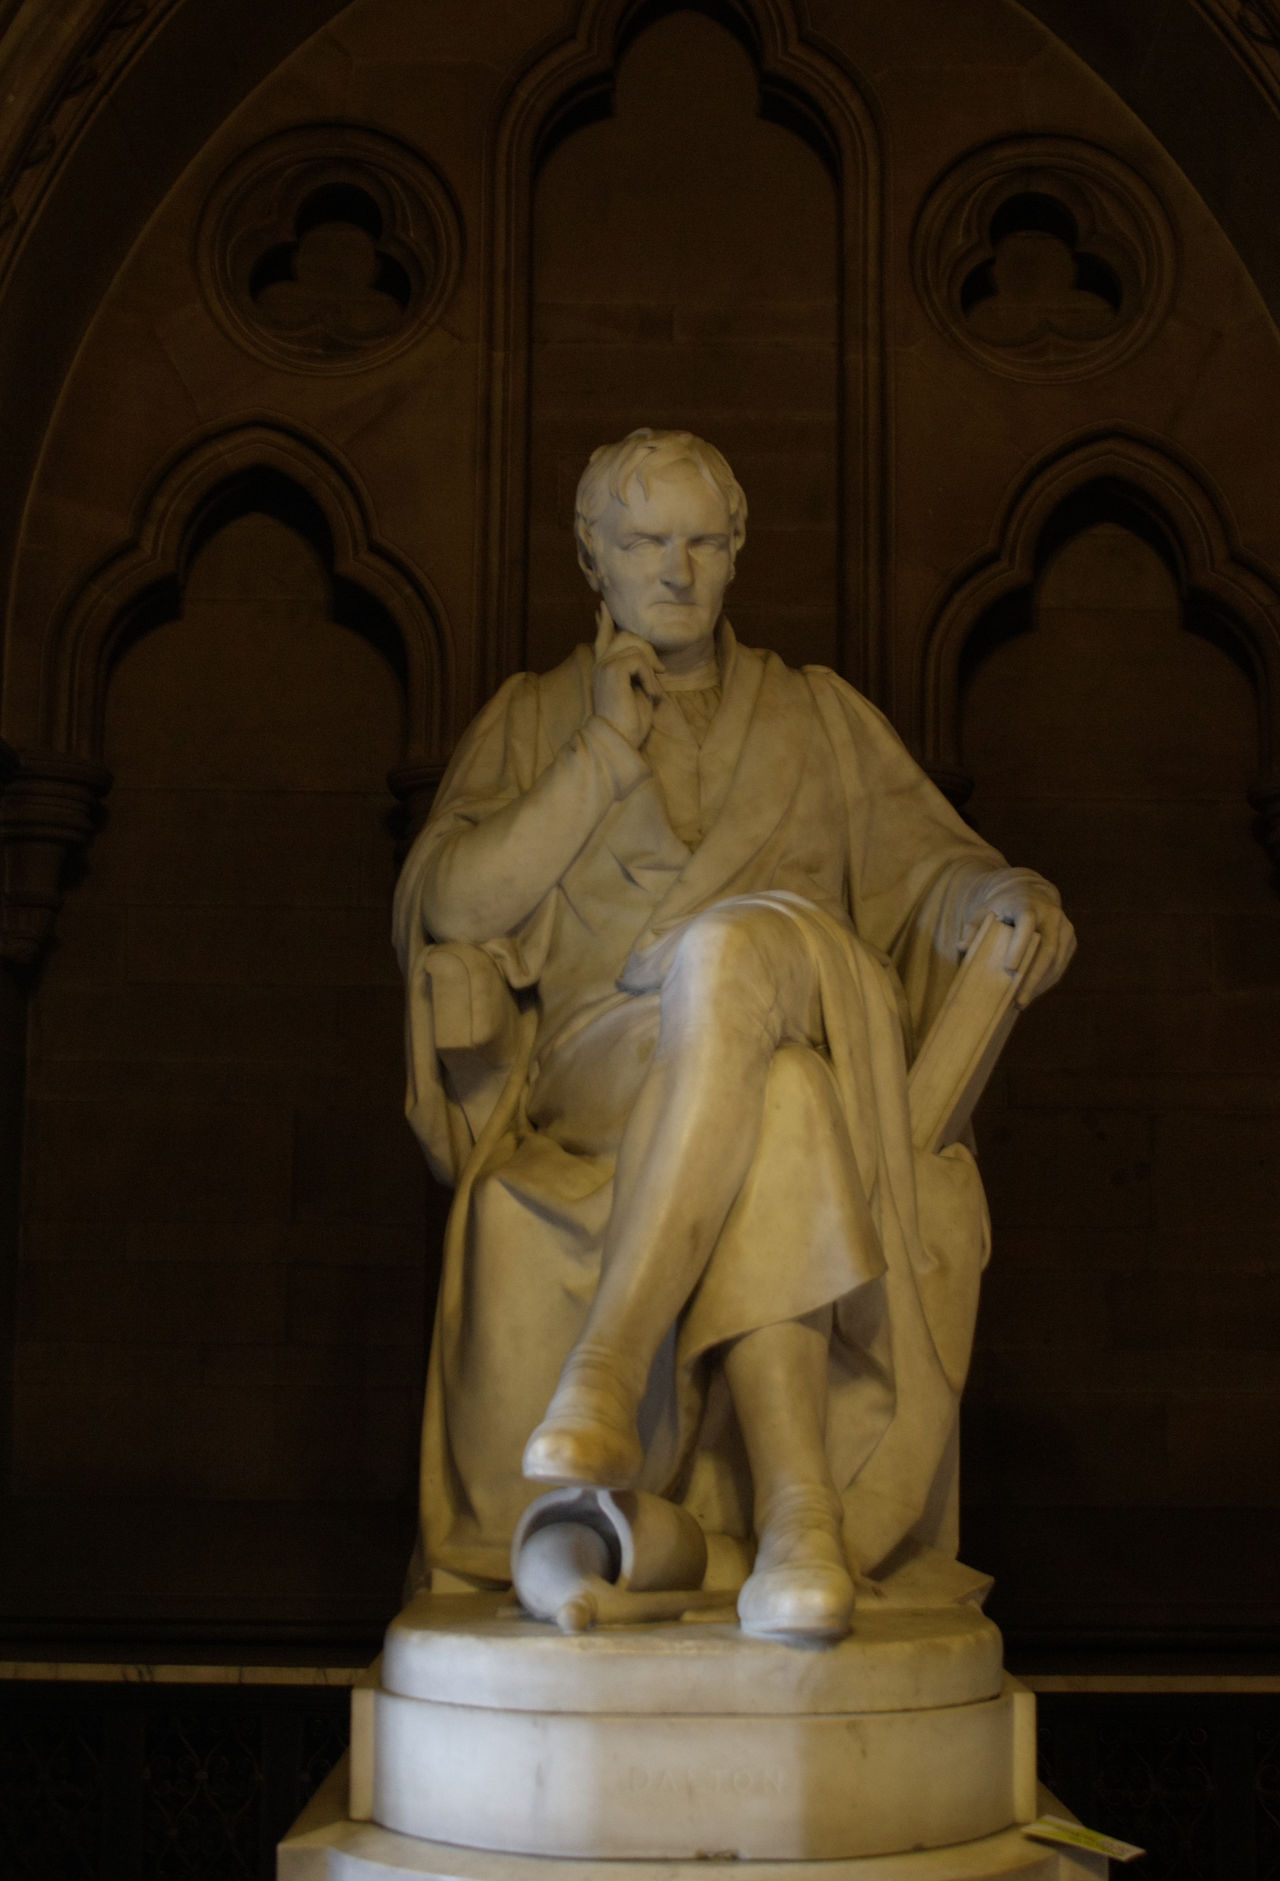 A statue of John Dalton, a school master who developed the Atomic Theory of matter, which underlines chemistry and atomic physics of today Human Representation Sculpture Statue Art And Craft Art History Arched The Past Stone No People John Dalton